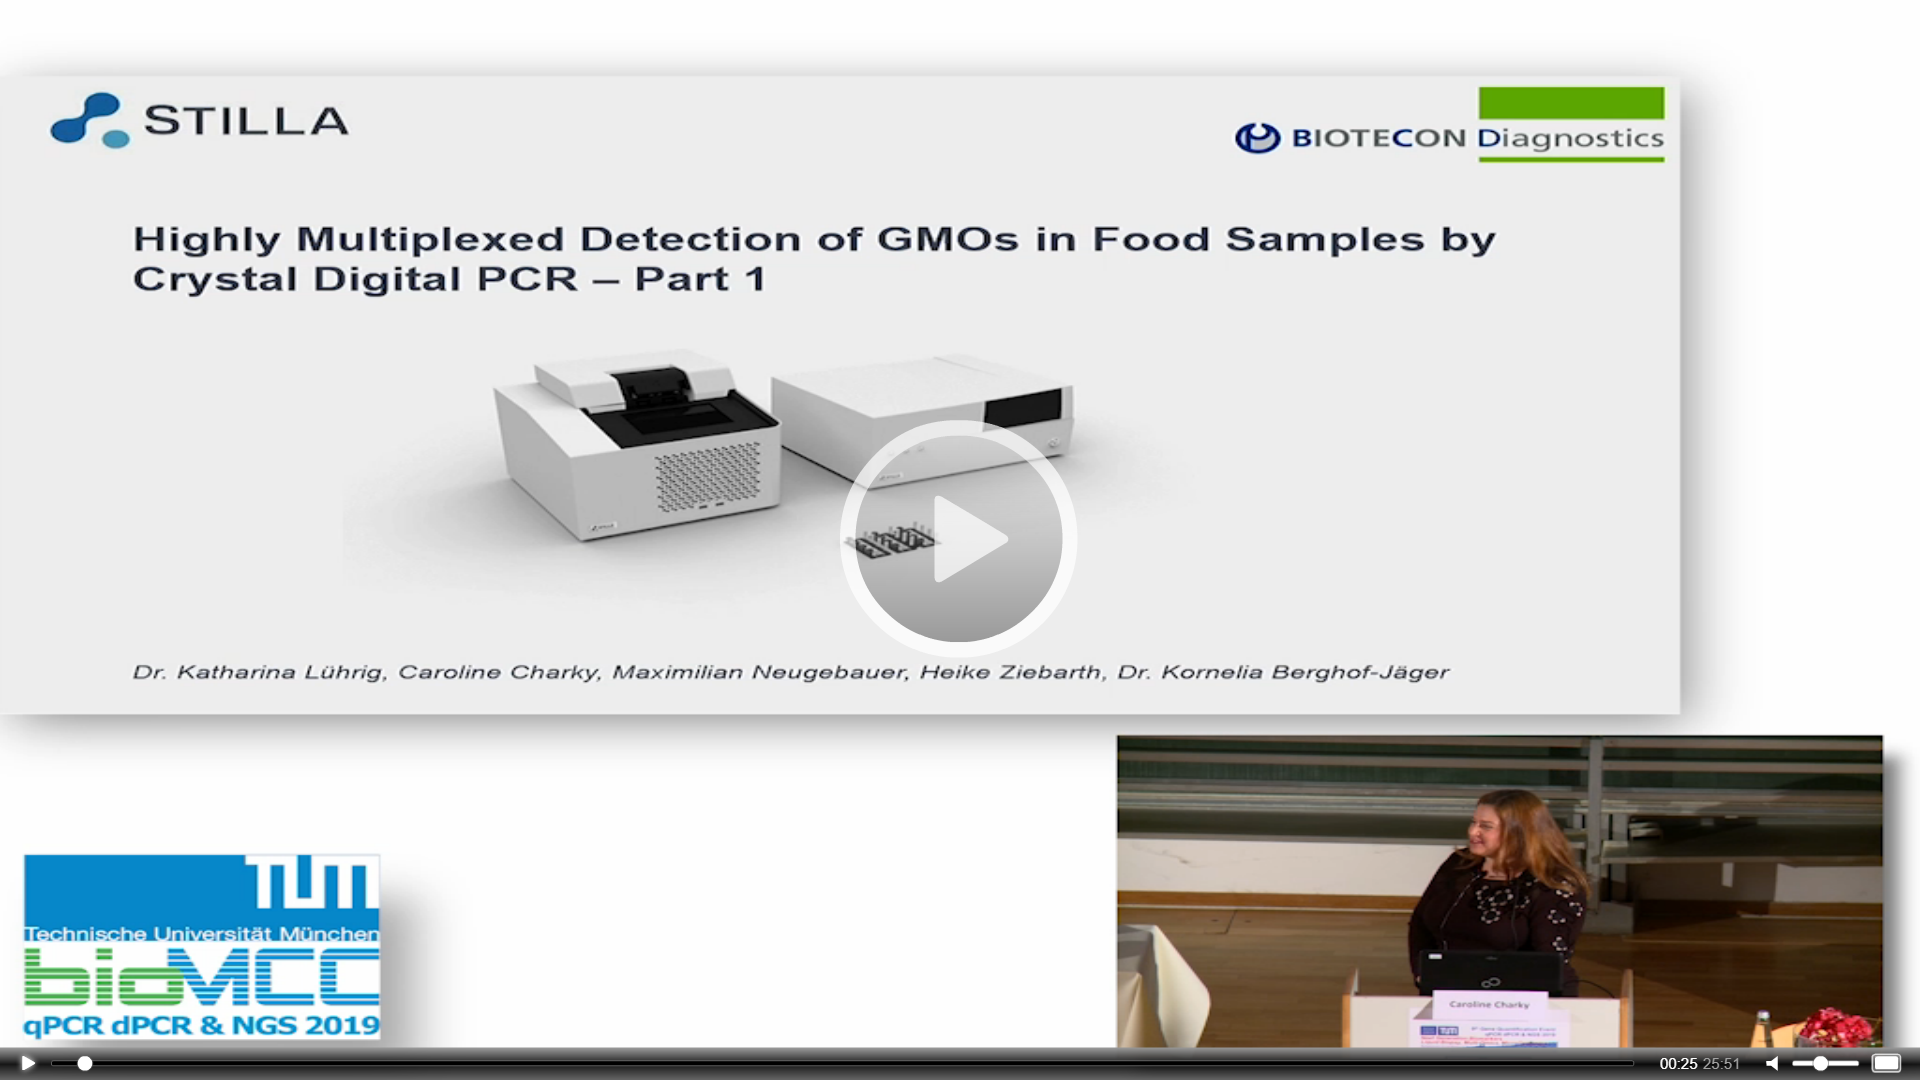 Highly Multiplexed Detection of GMOs in Food Samples by Crystal Digital PCR